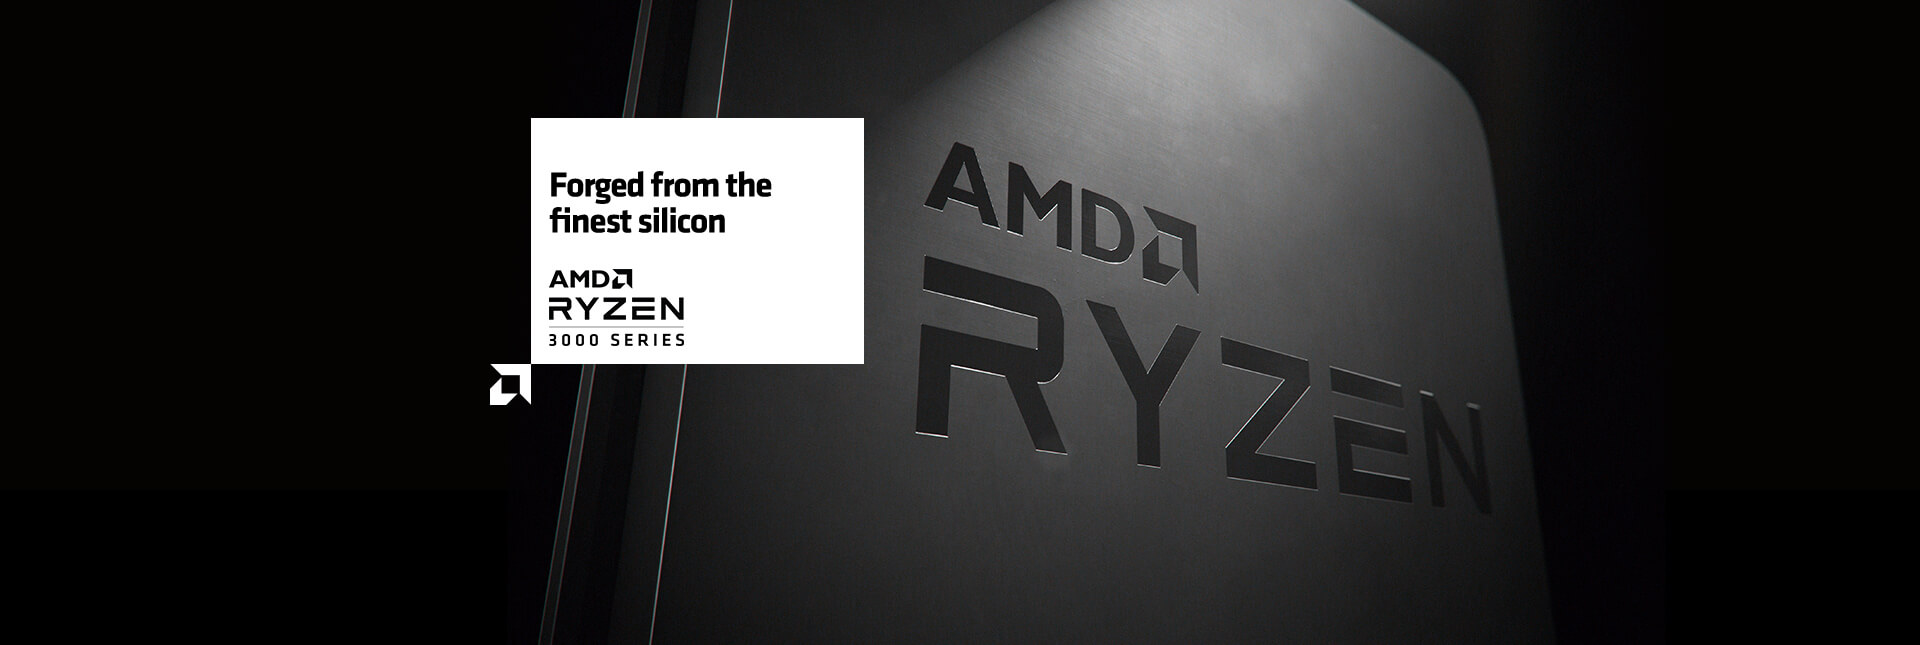 Forged from the finest silicon. AMD Ryzen 3000 Series